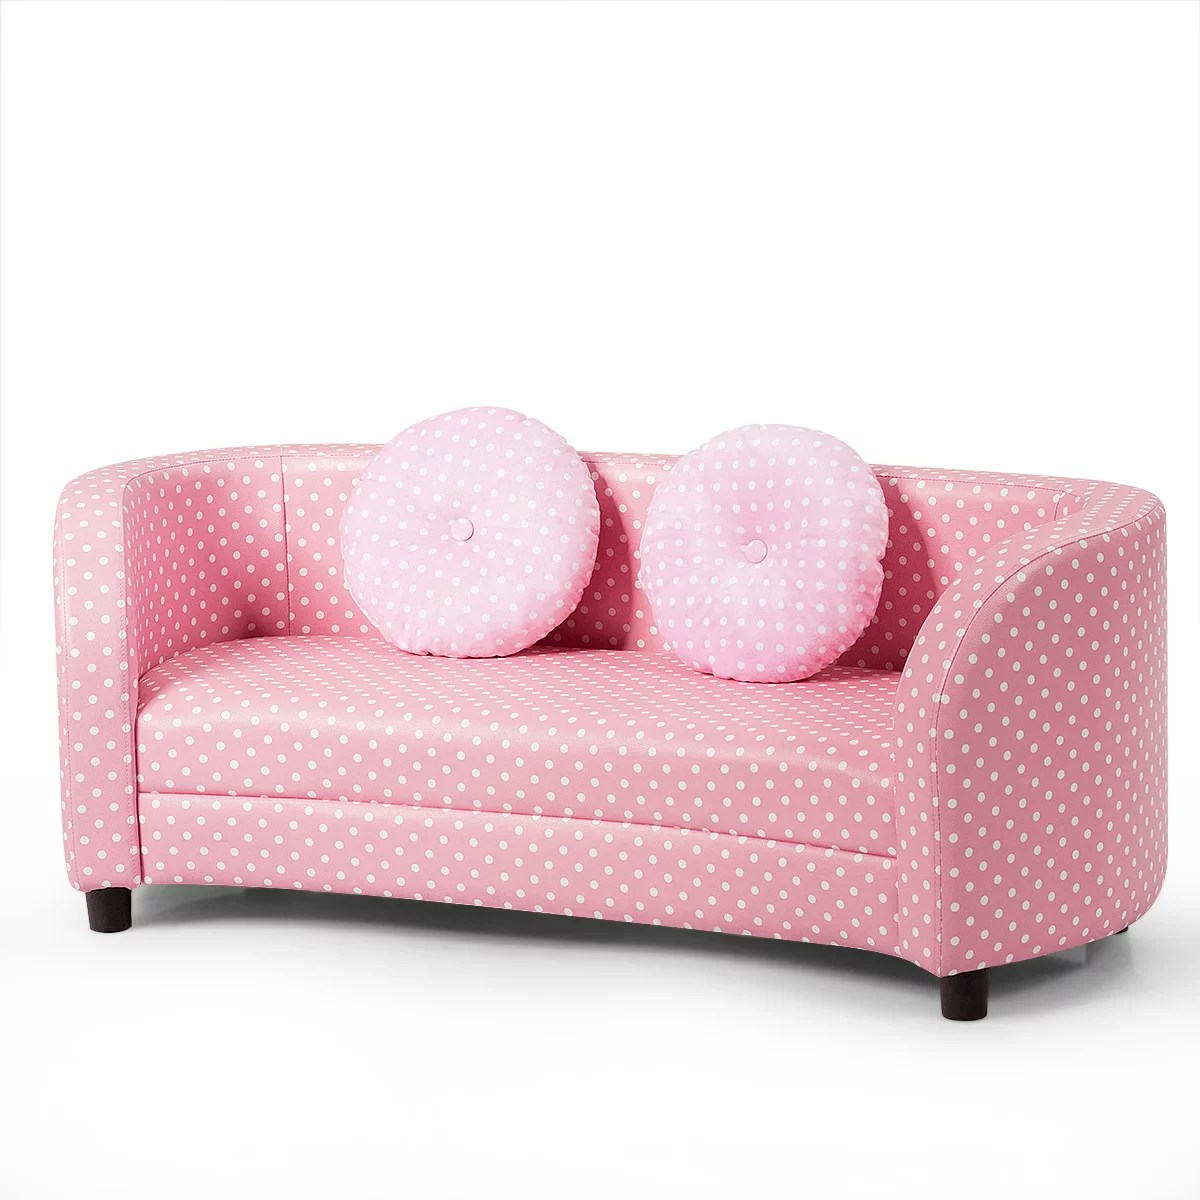 giantex 2 seats kids couch armrest chair playroom furniture two cloth pillows pink